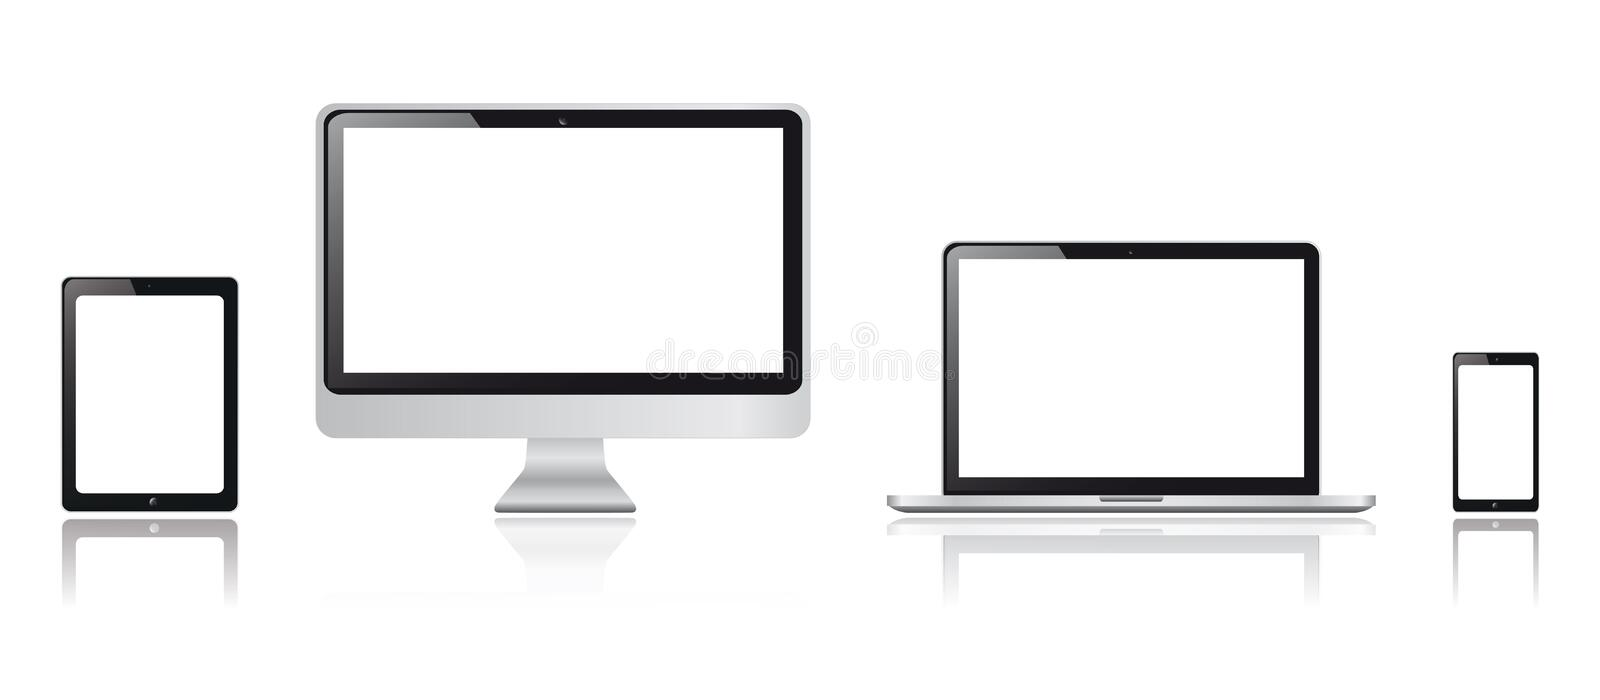 Realistic tablet, smartphone, monitor and tablet computer graphics royalty free illustration